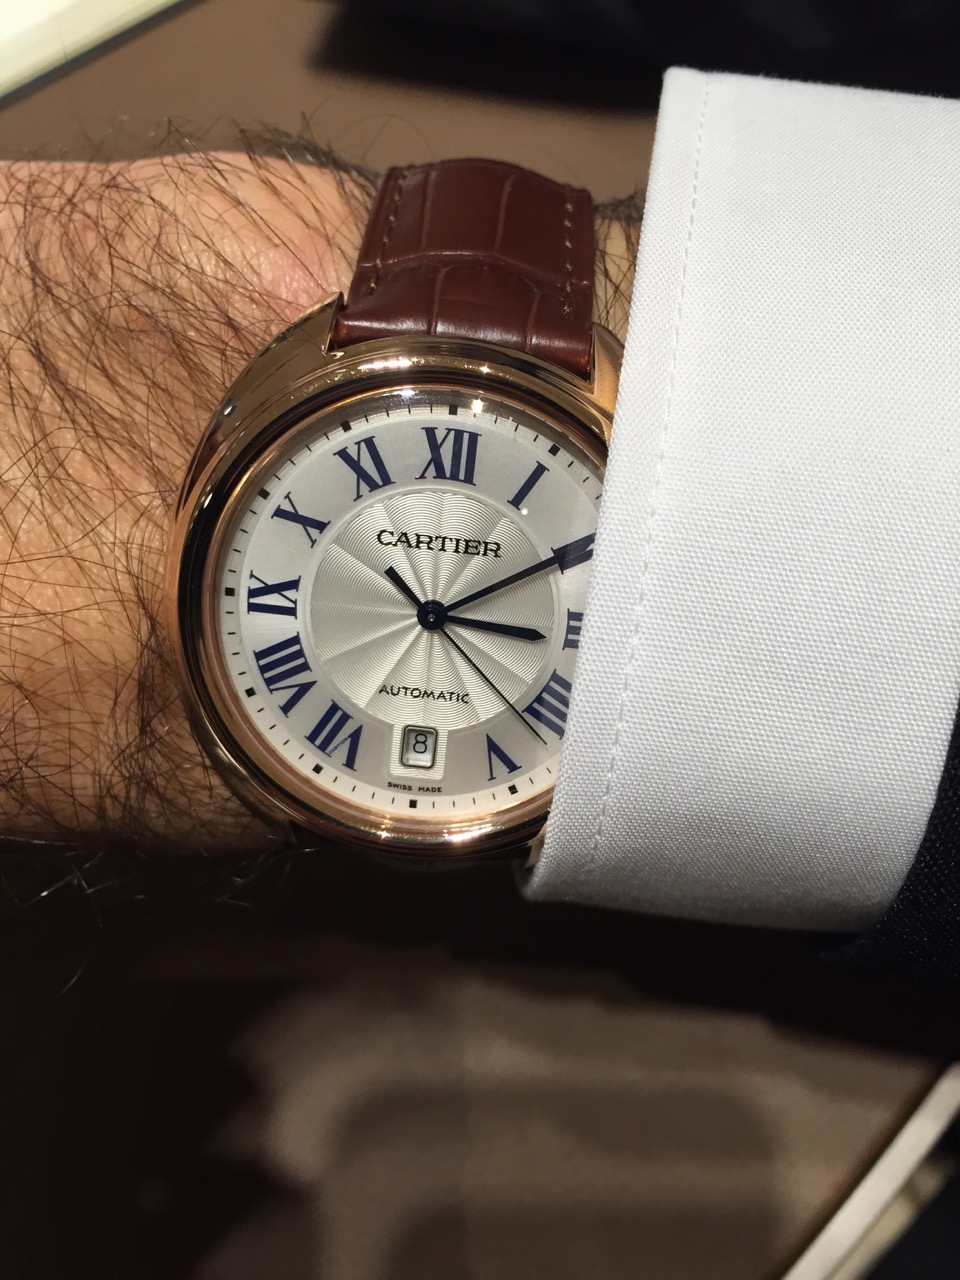 Cartier fake watches